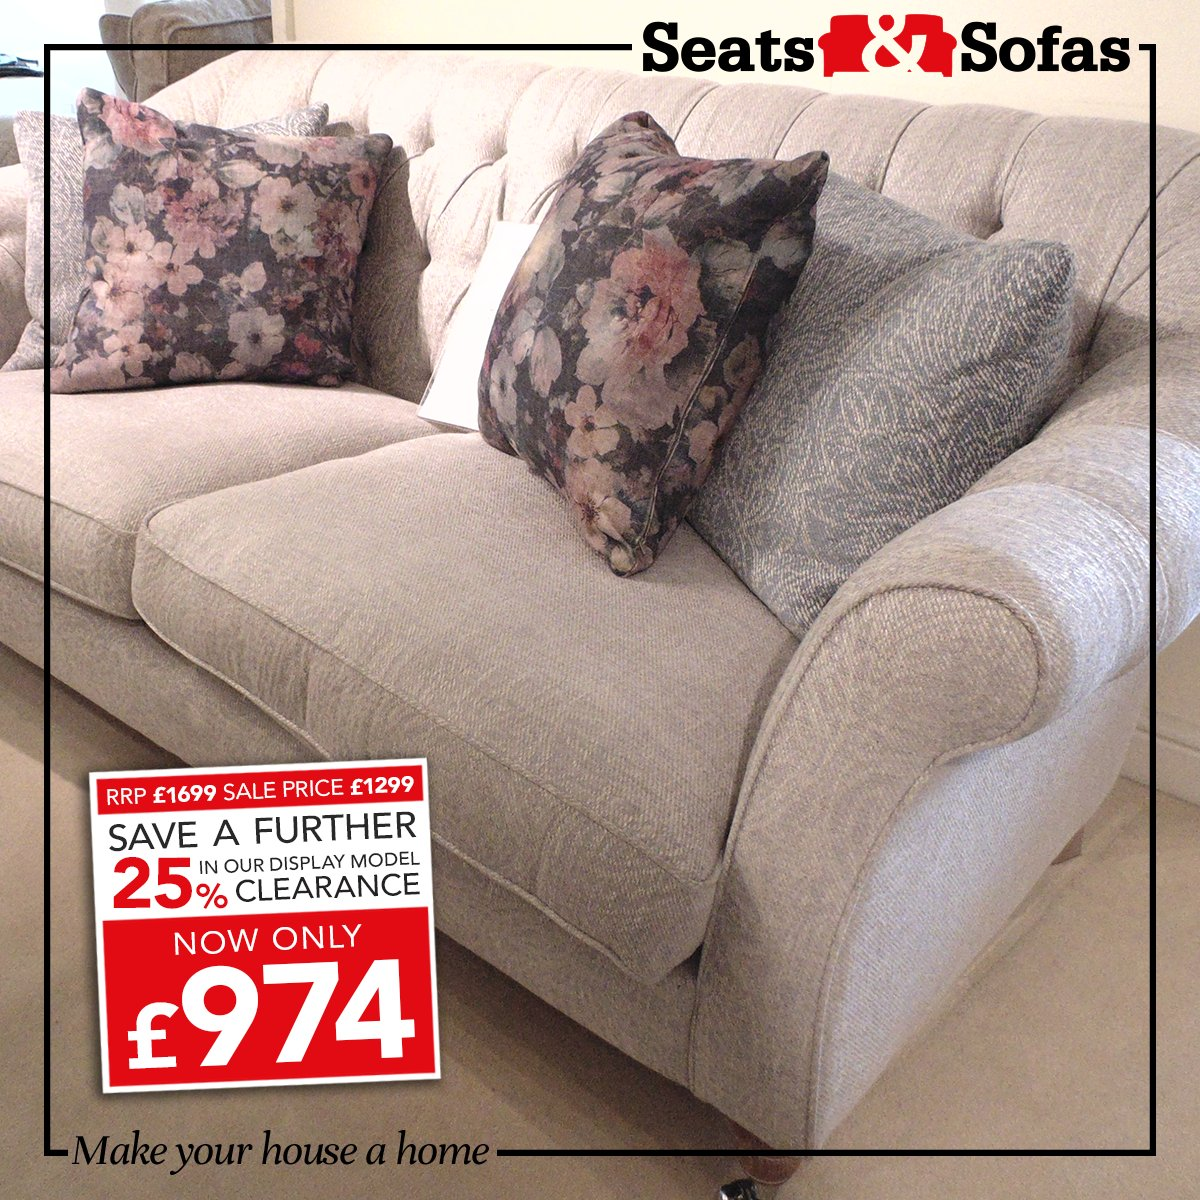 Seats And Sofas Genk Seats Sofas Zuhause Image Idee